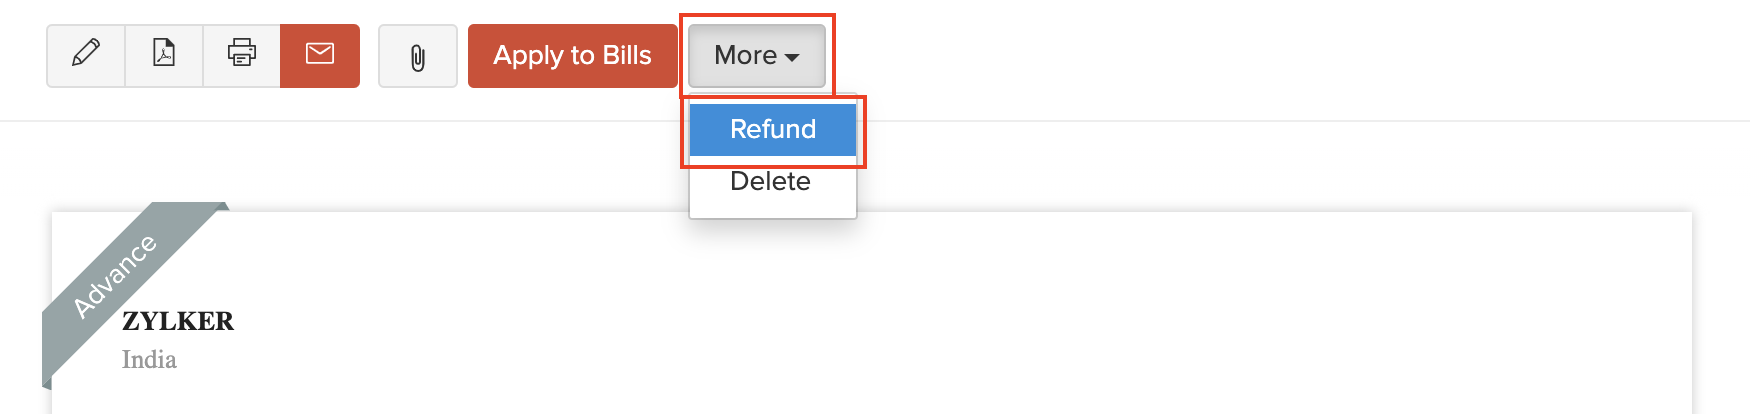 Refund Vendor Payment